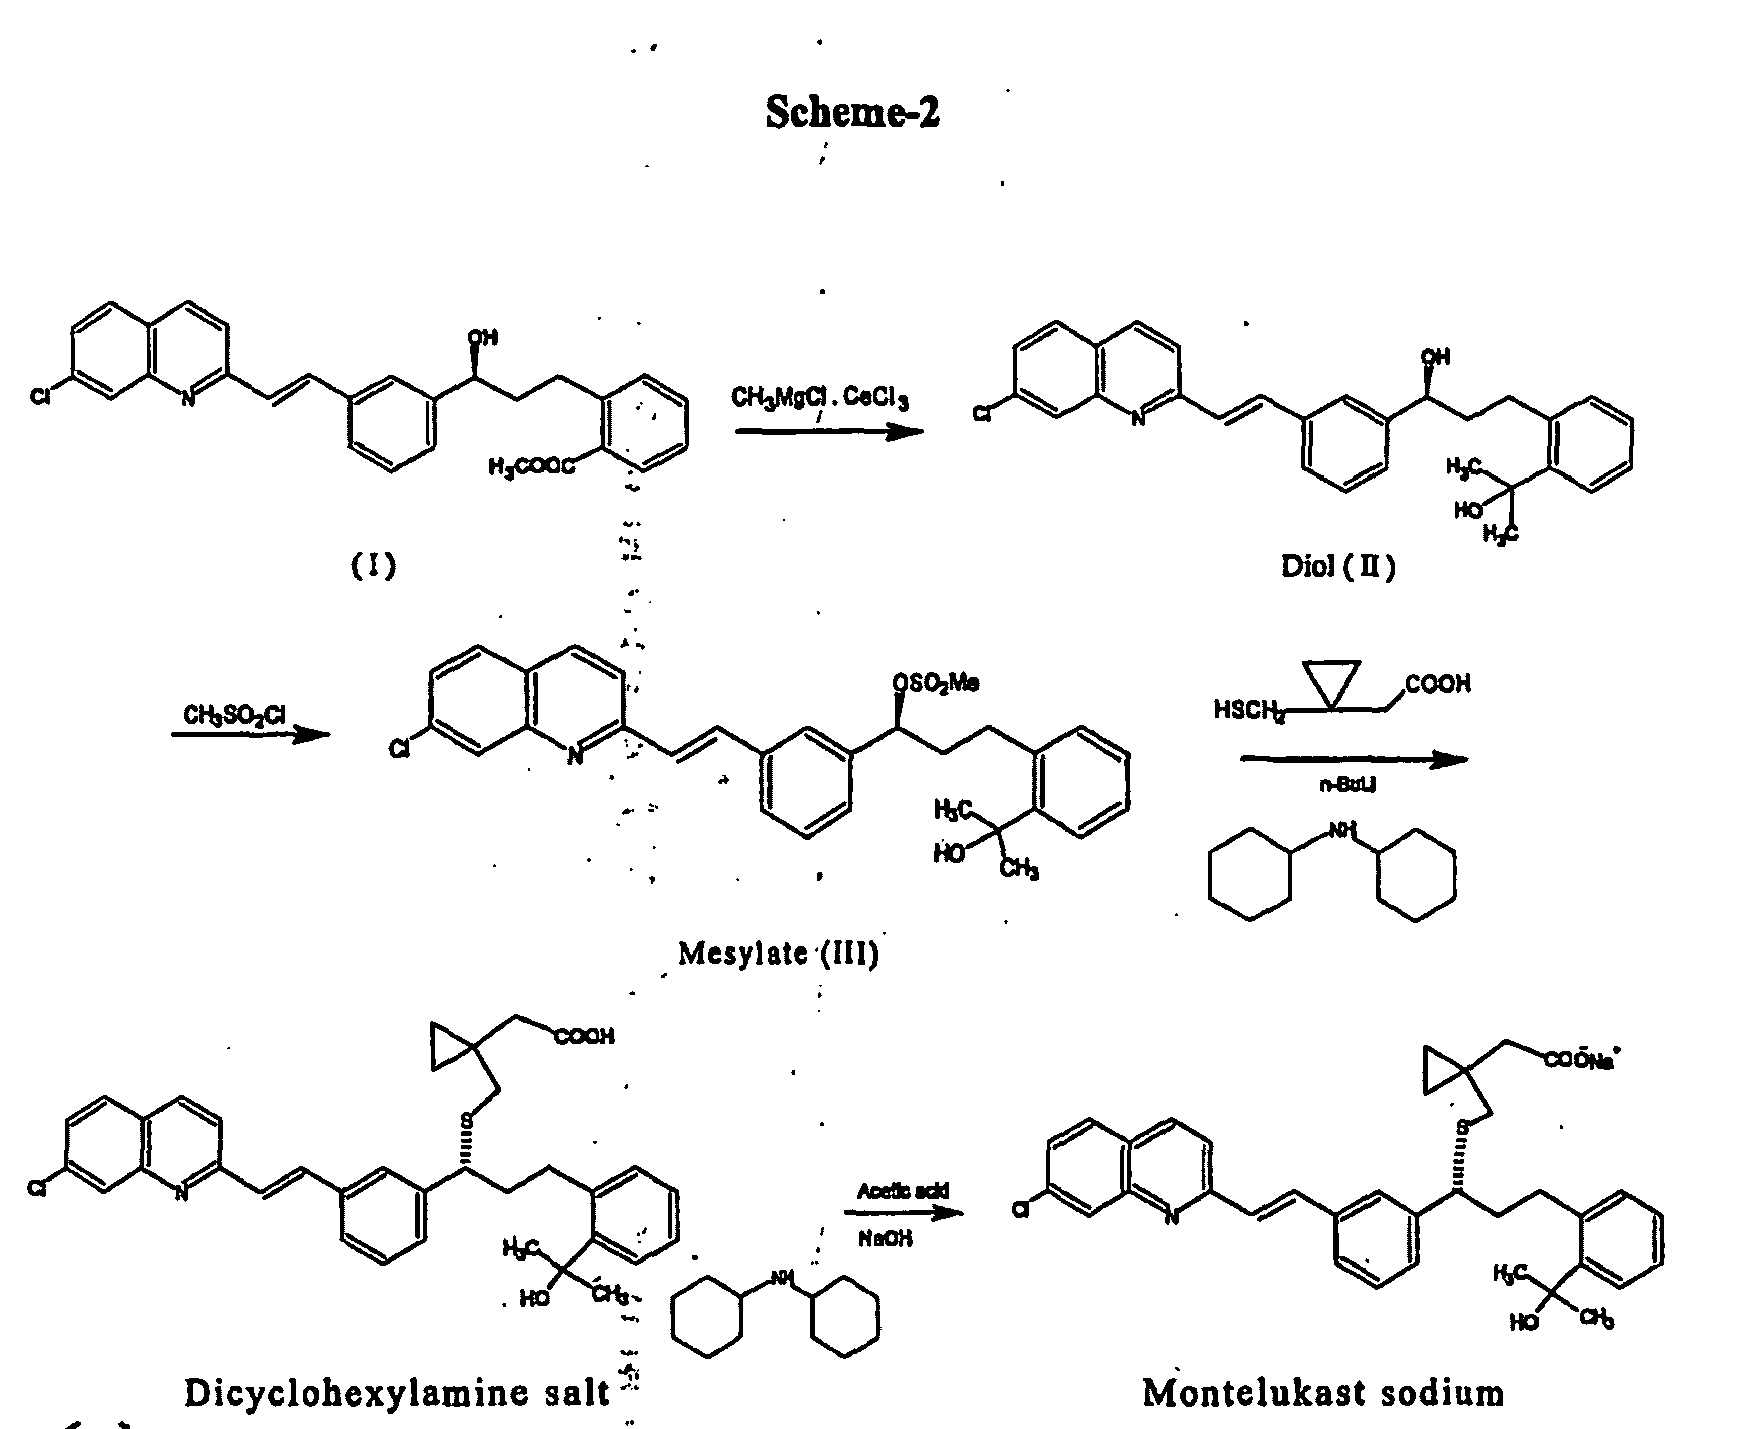 PROCESS FOR THE PREPARATION OF MONTELUKAST AND ITS SALTS